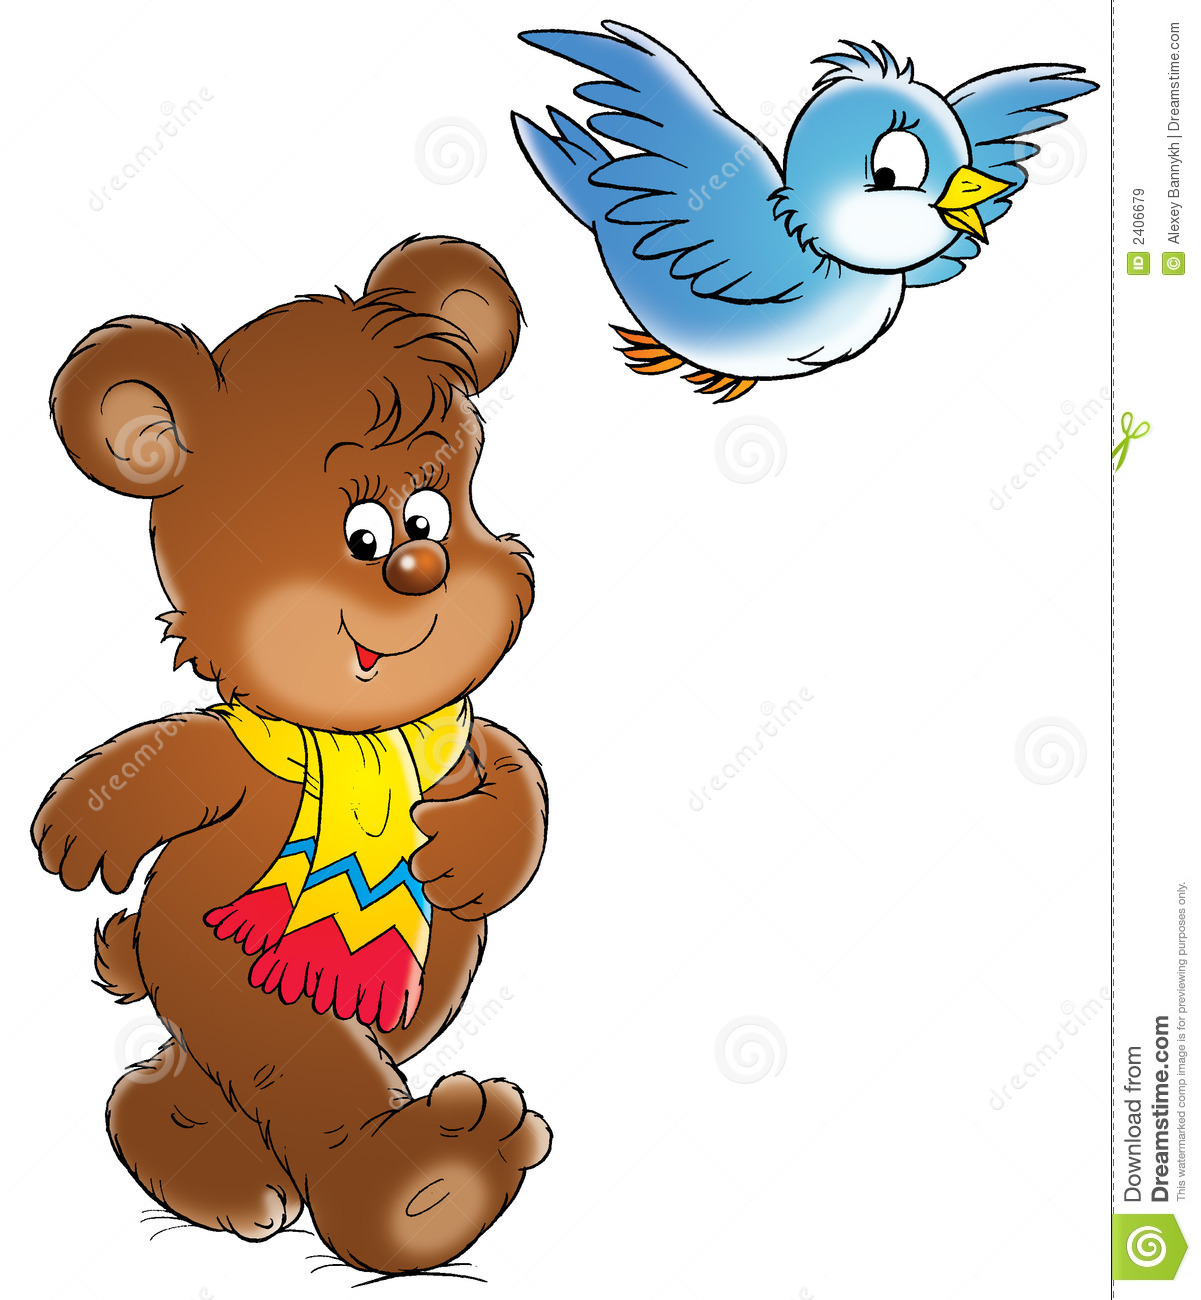 Bear And Bird Royalty Free Stock Images Image 2406679